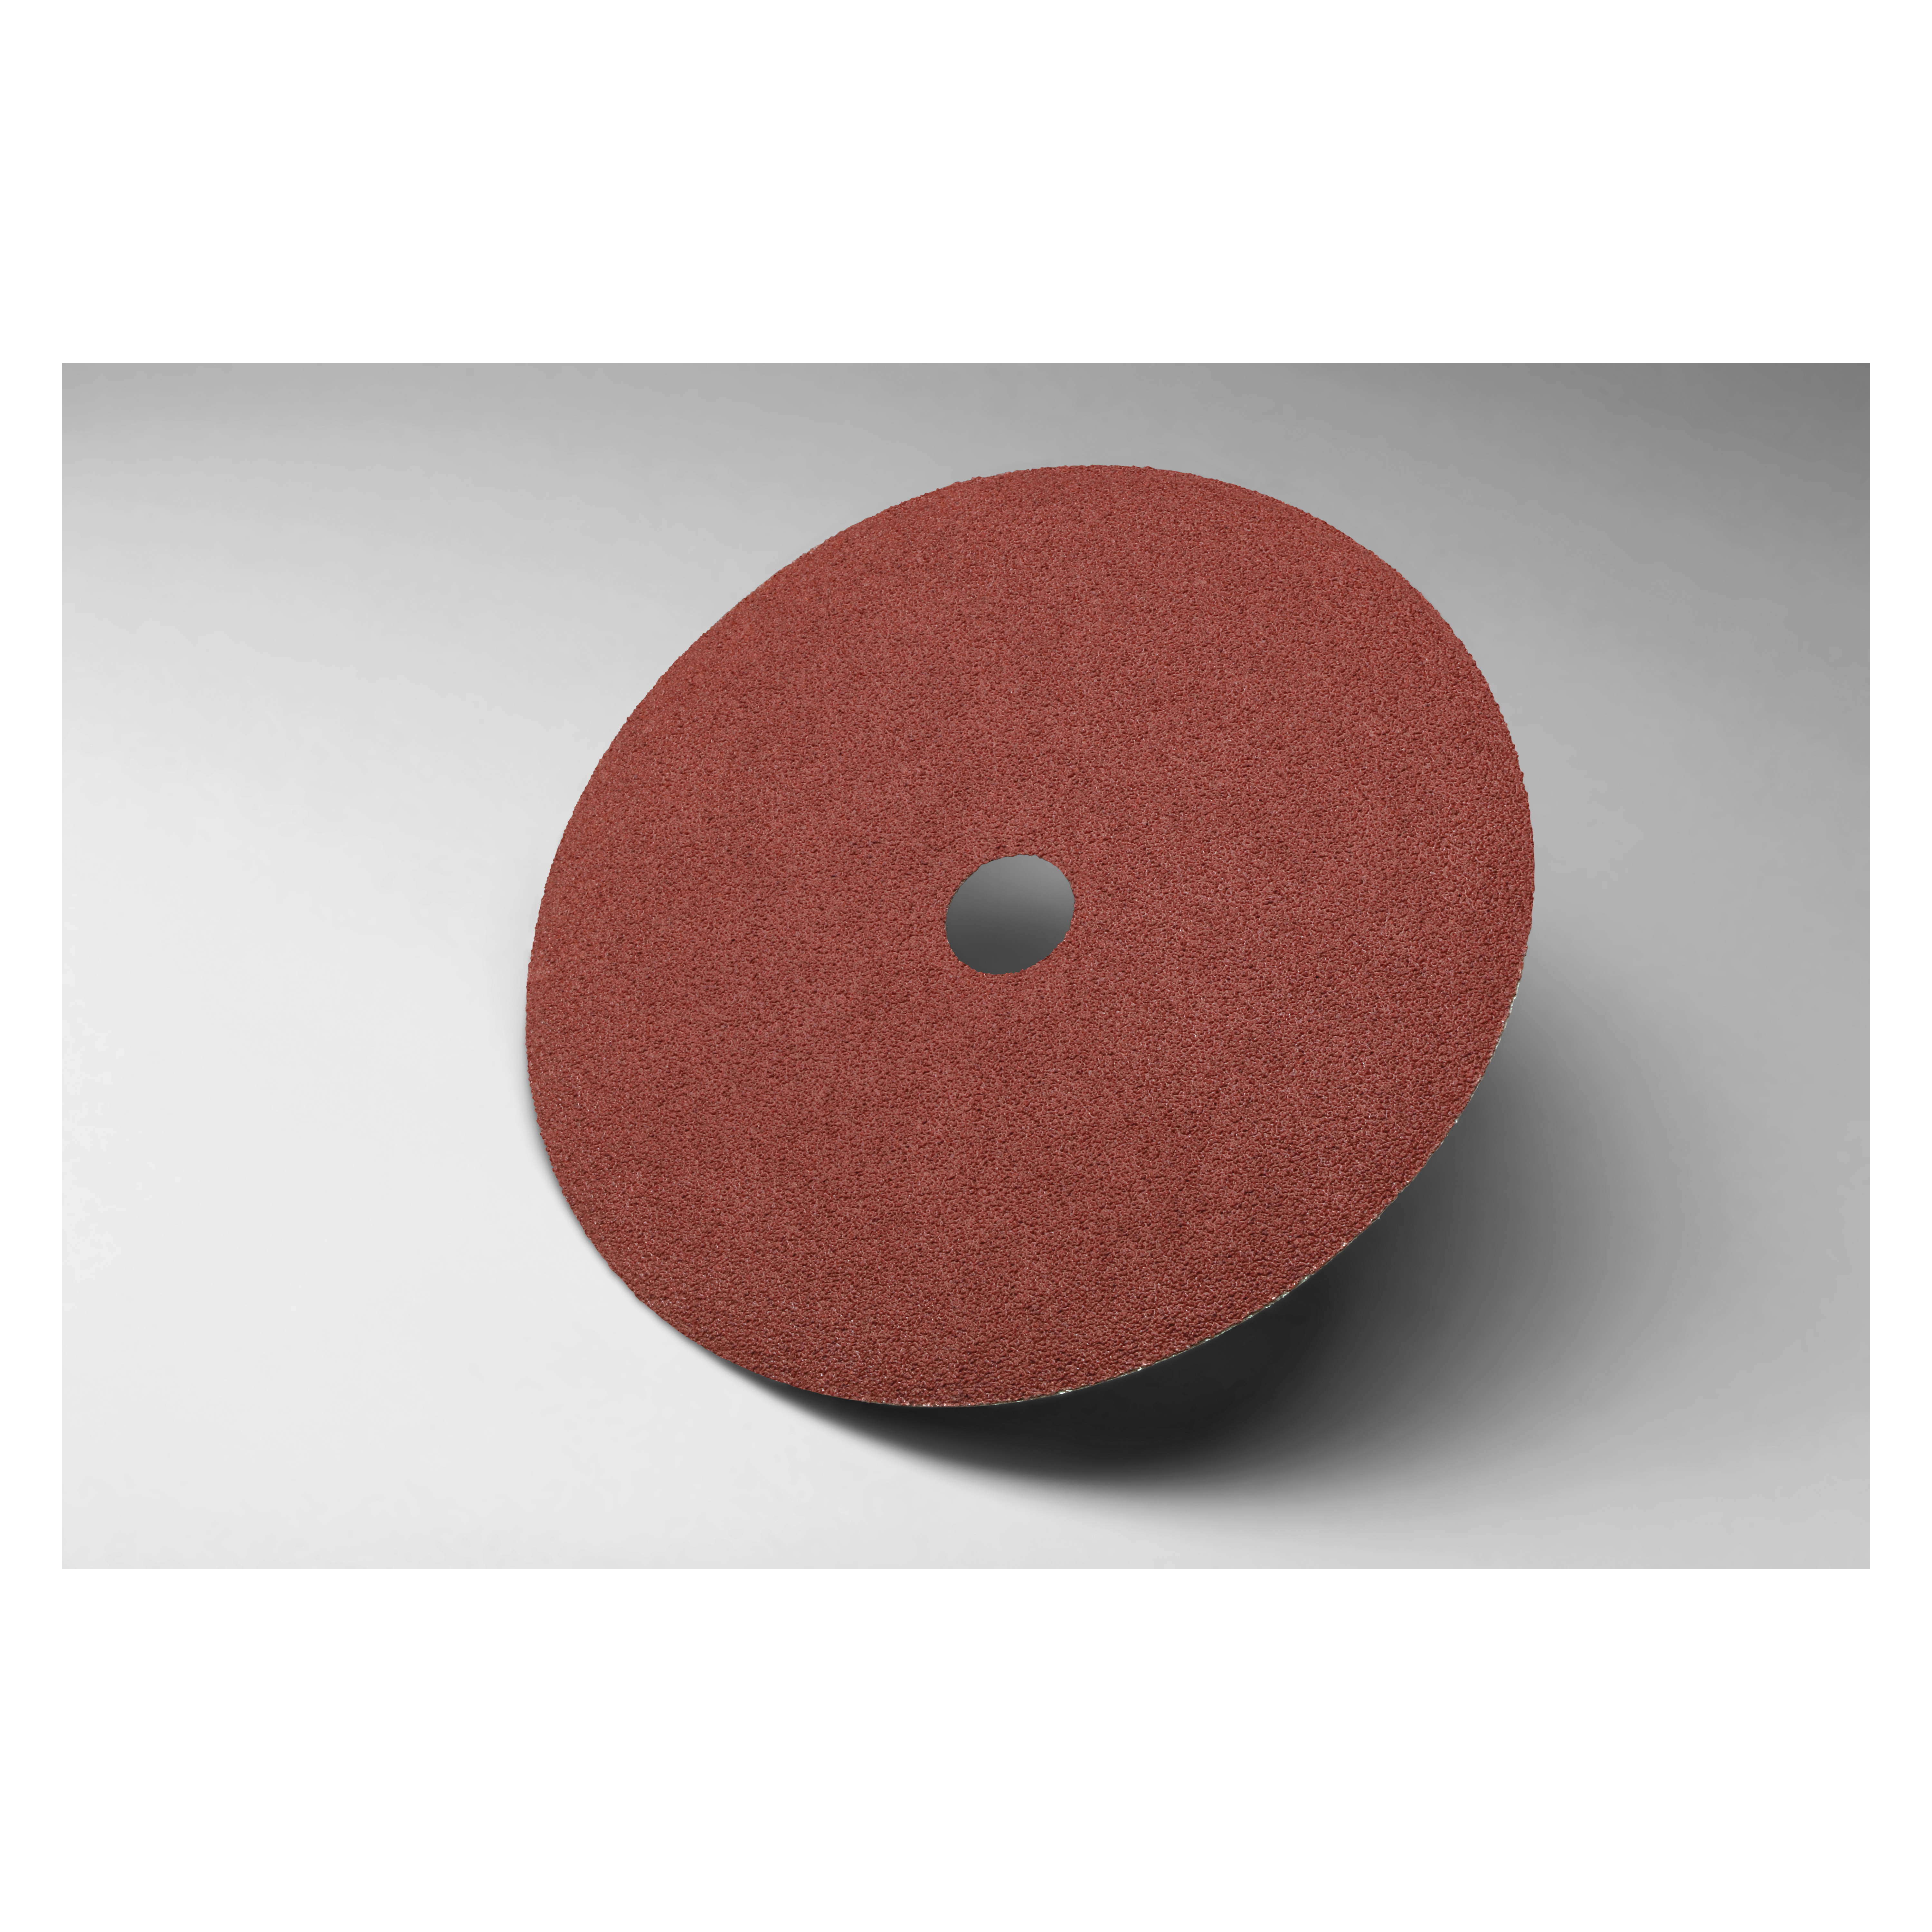 3M™ 051144-01741 Close Coated Abrasive Disc, 7 in Dia, 7/8 in Center Hole, 60 Grit, Medium Grade, Aluminum Oxide Abrasive, Arbor Attachment